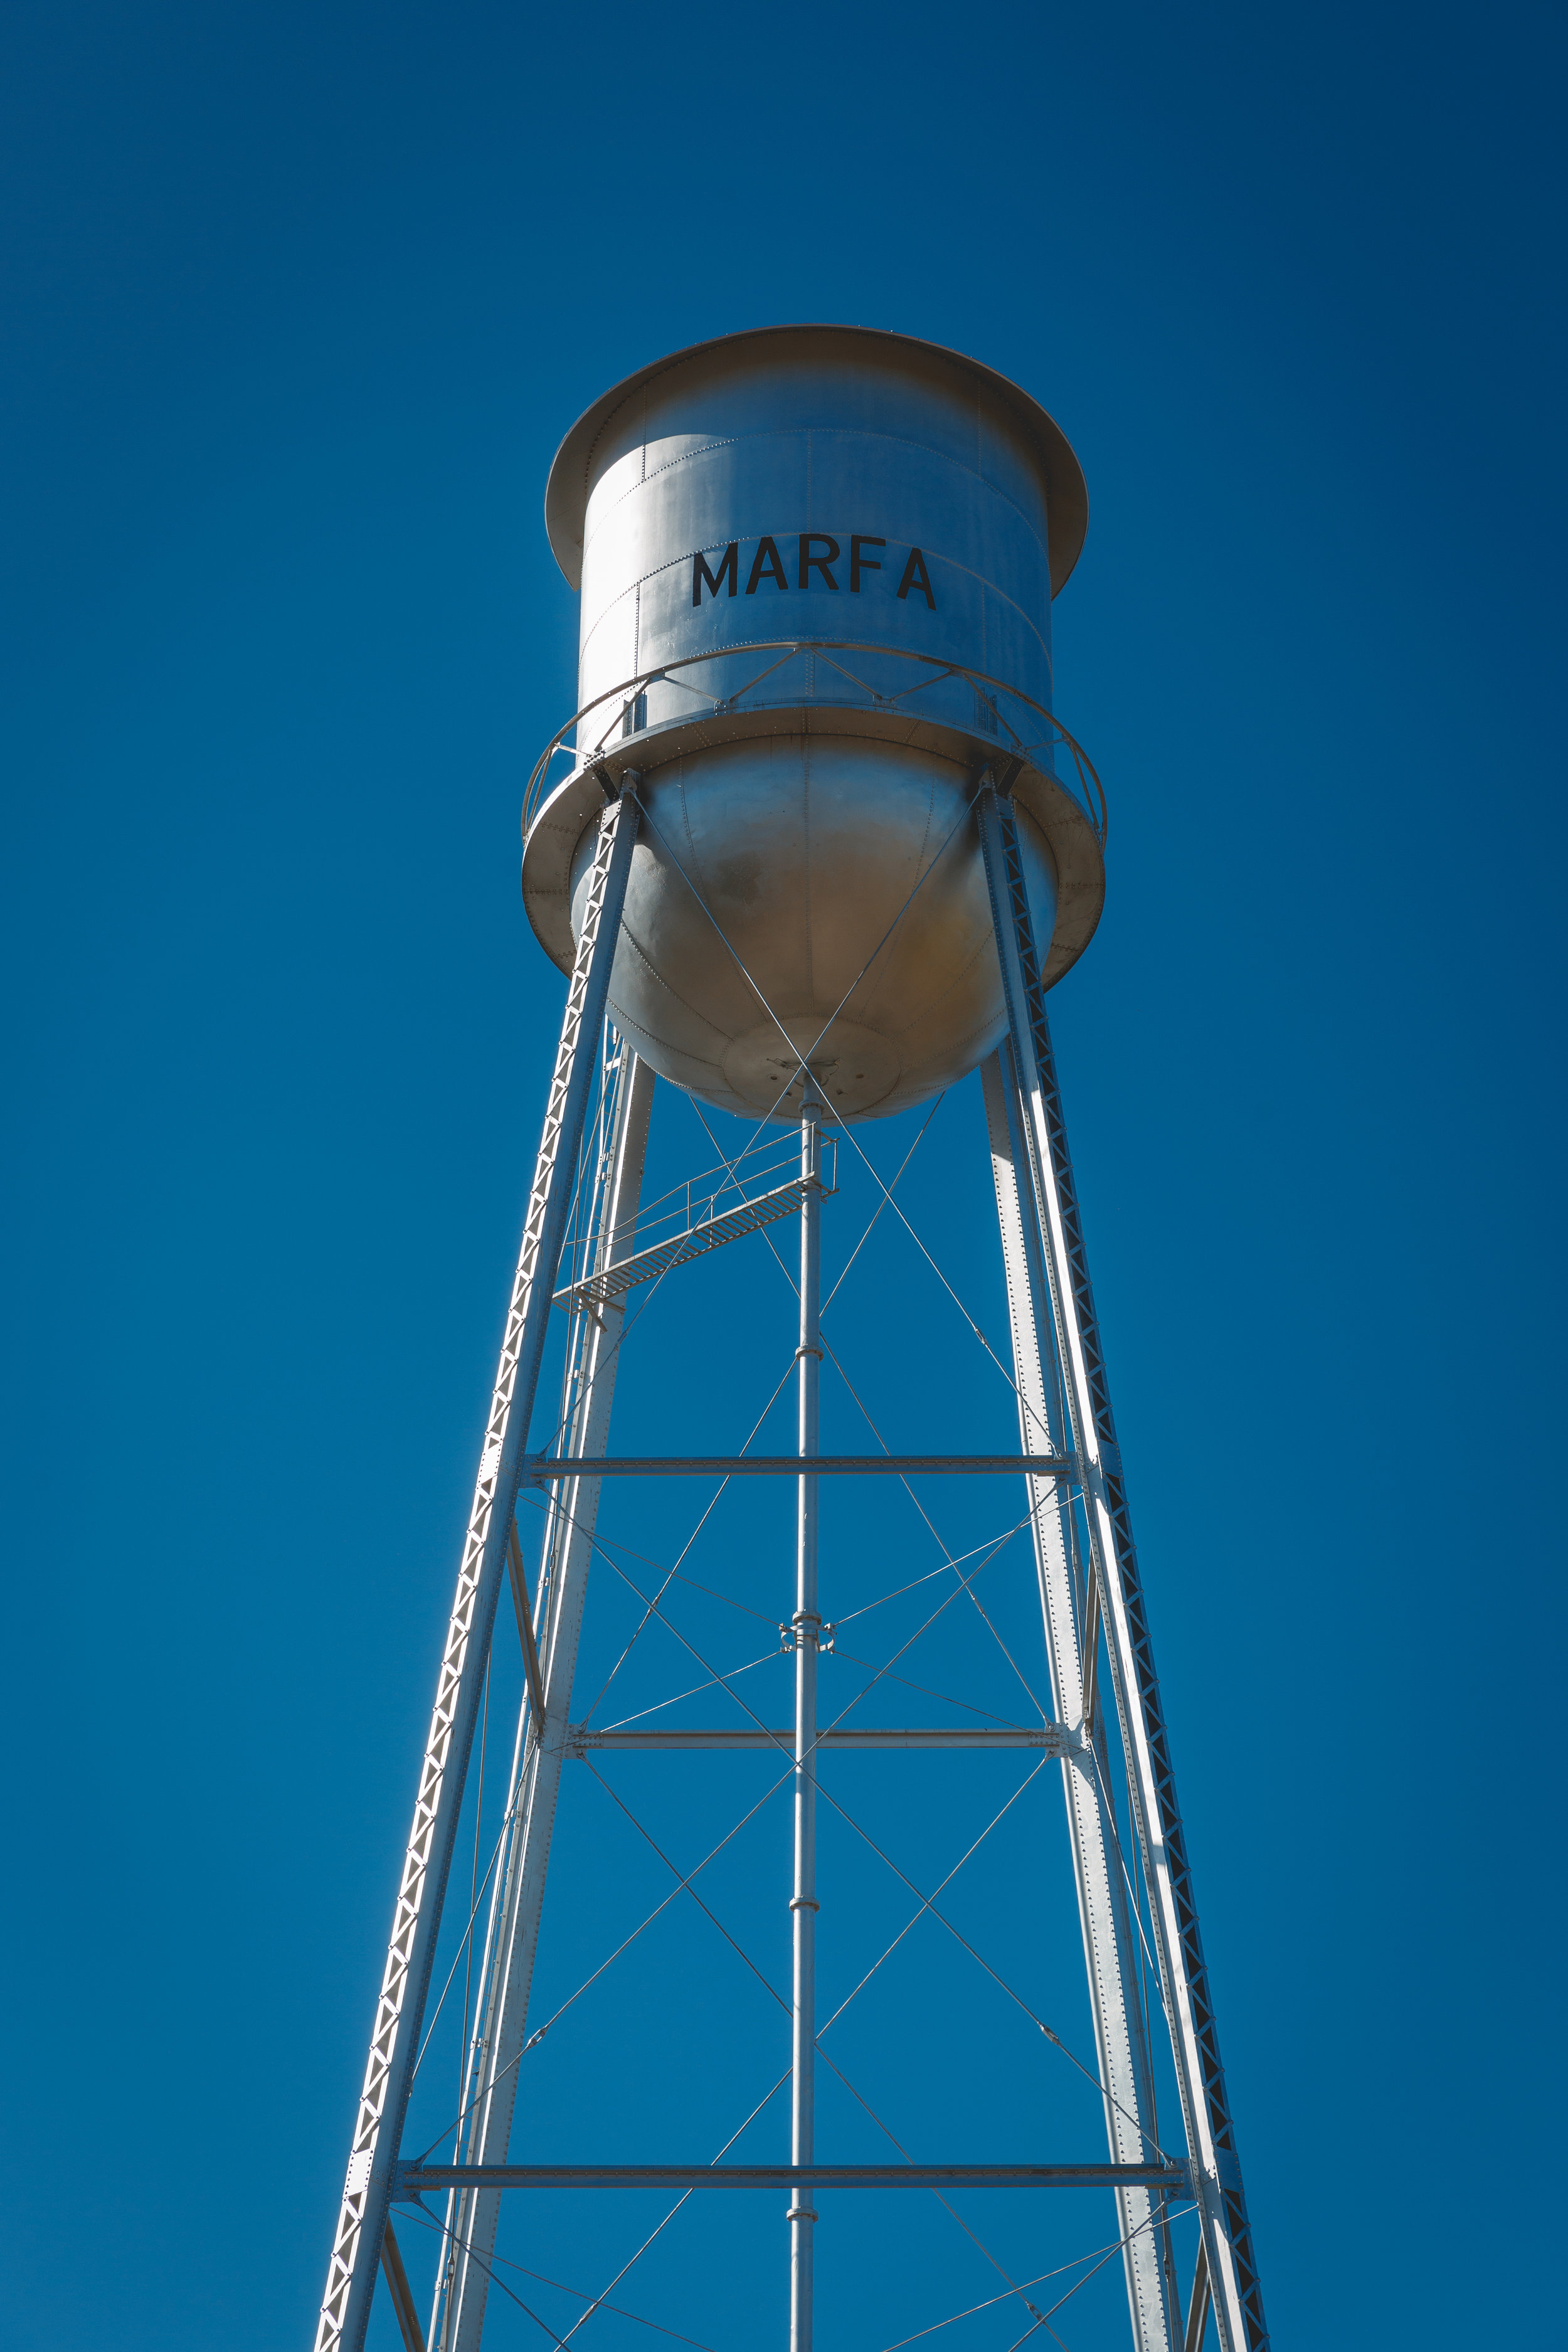 The water tower in Marfa, Texas